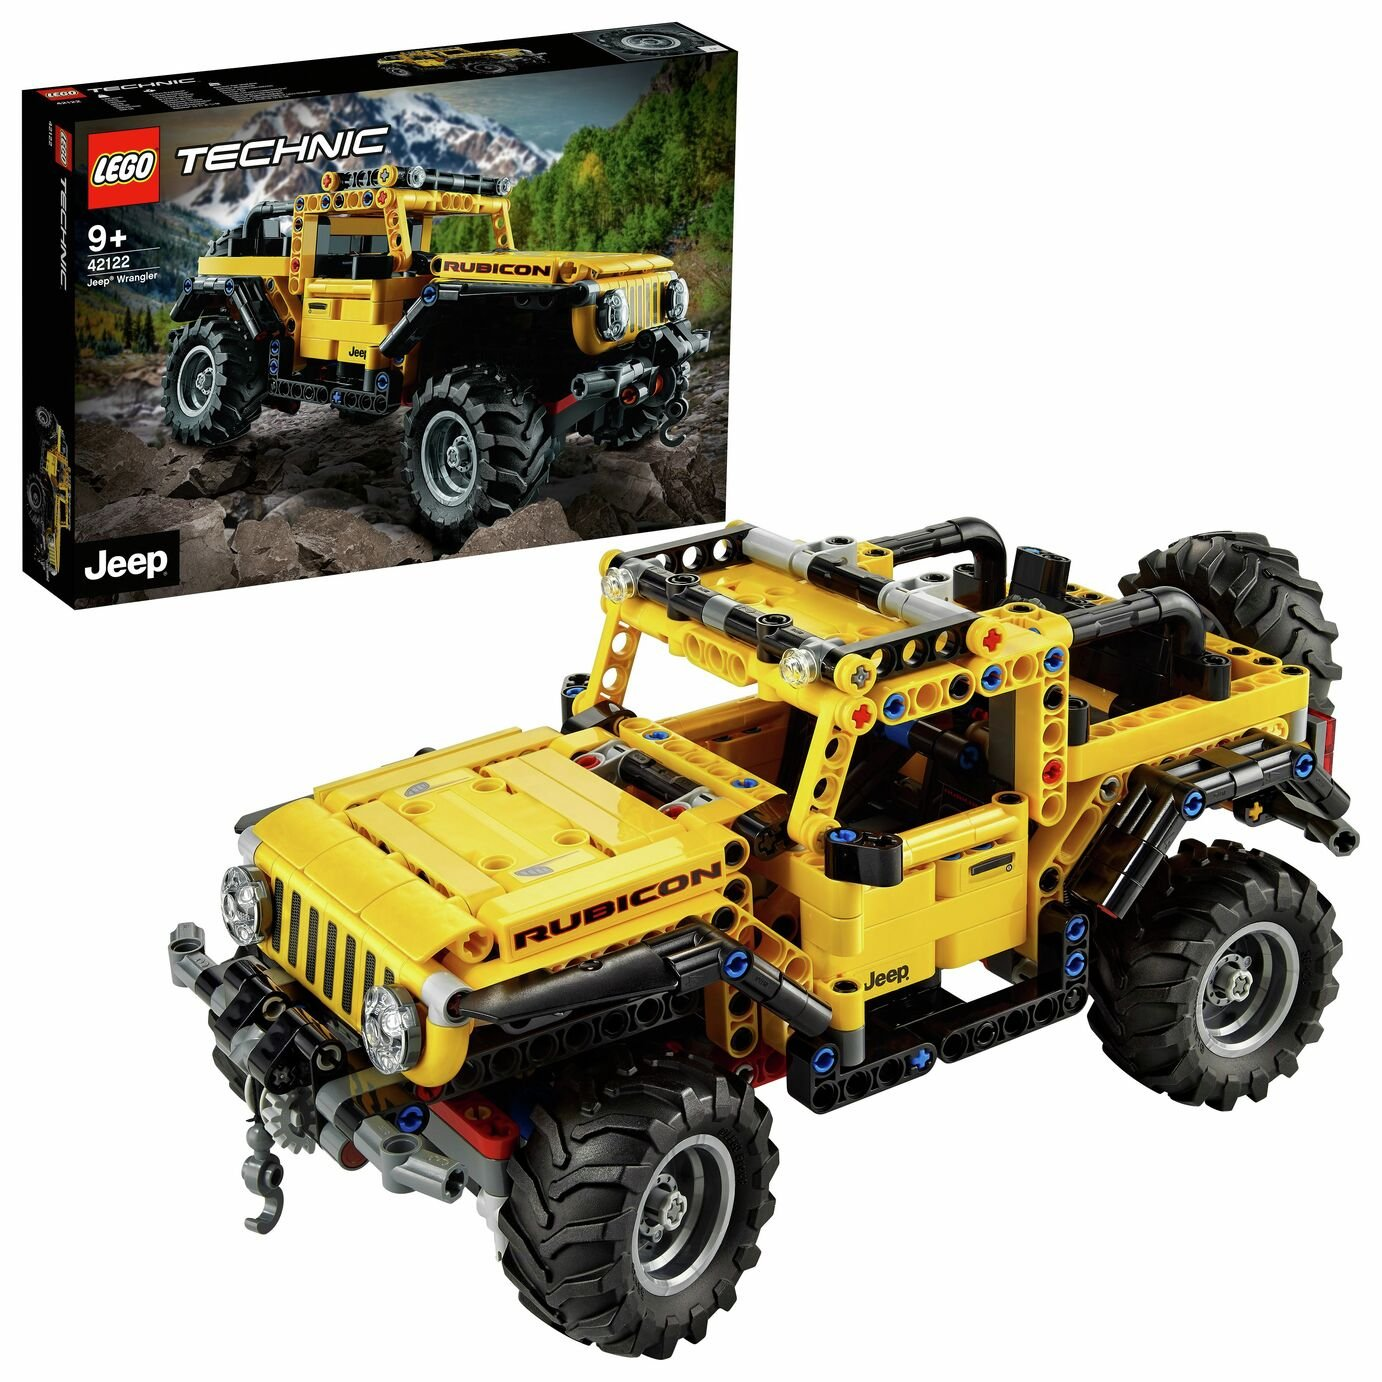 LEGO Technic Jeep Wrangler Rubicon Toy Car 42122